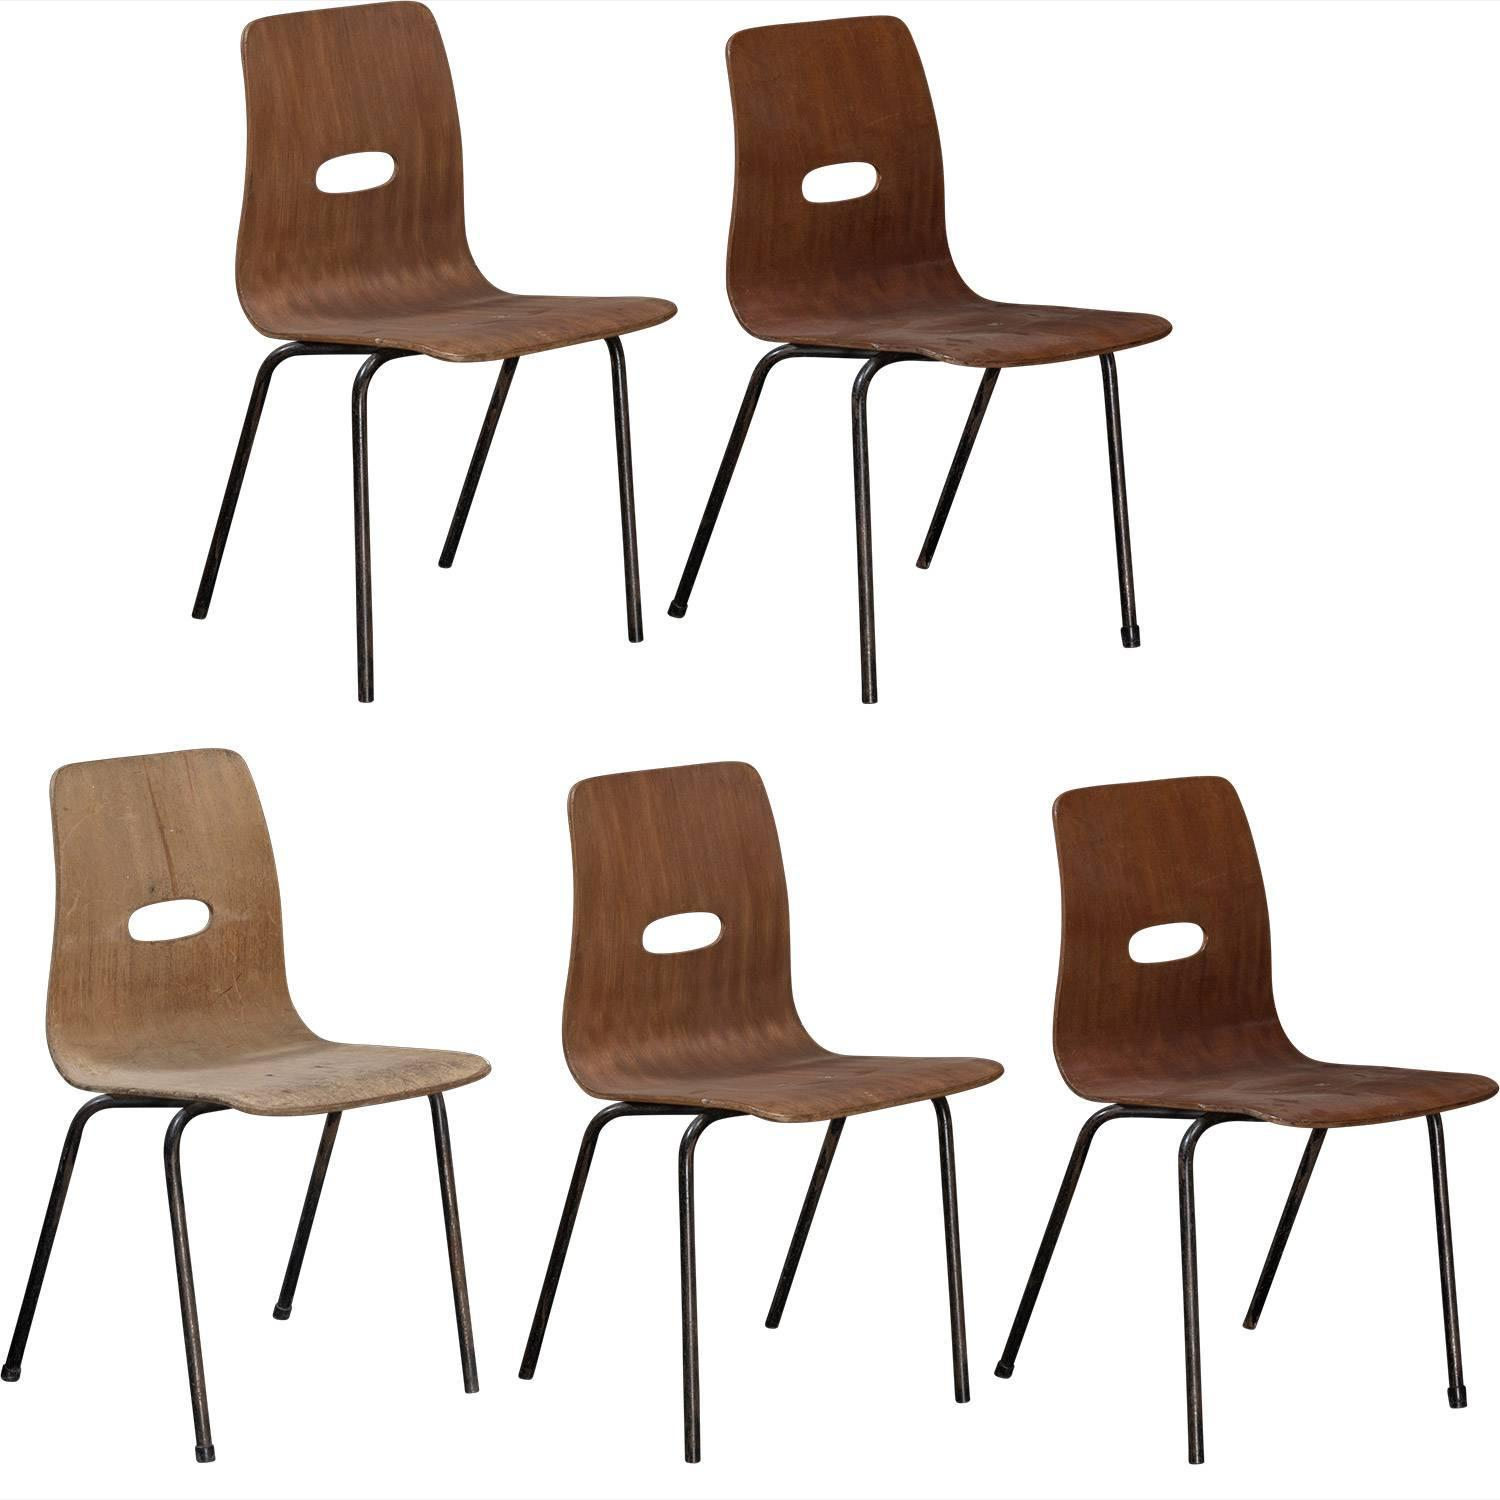 stak chairs by robin day circa 1950 for sale at 1stdibs